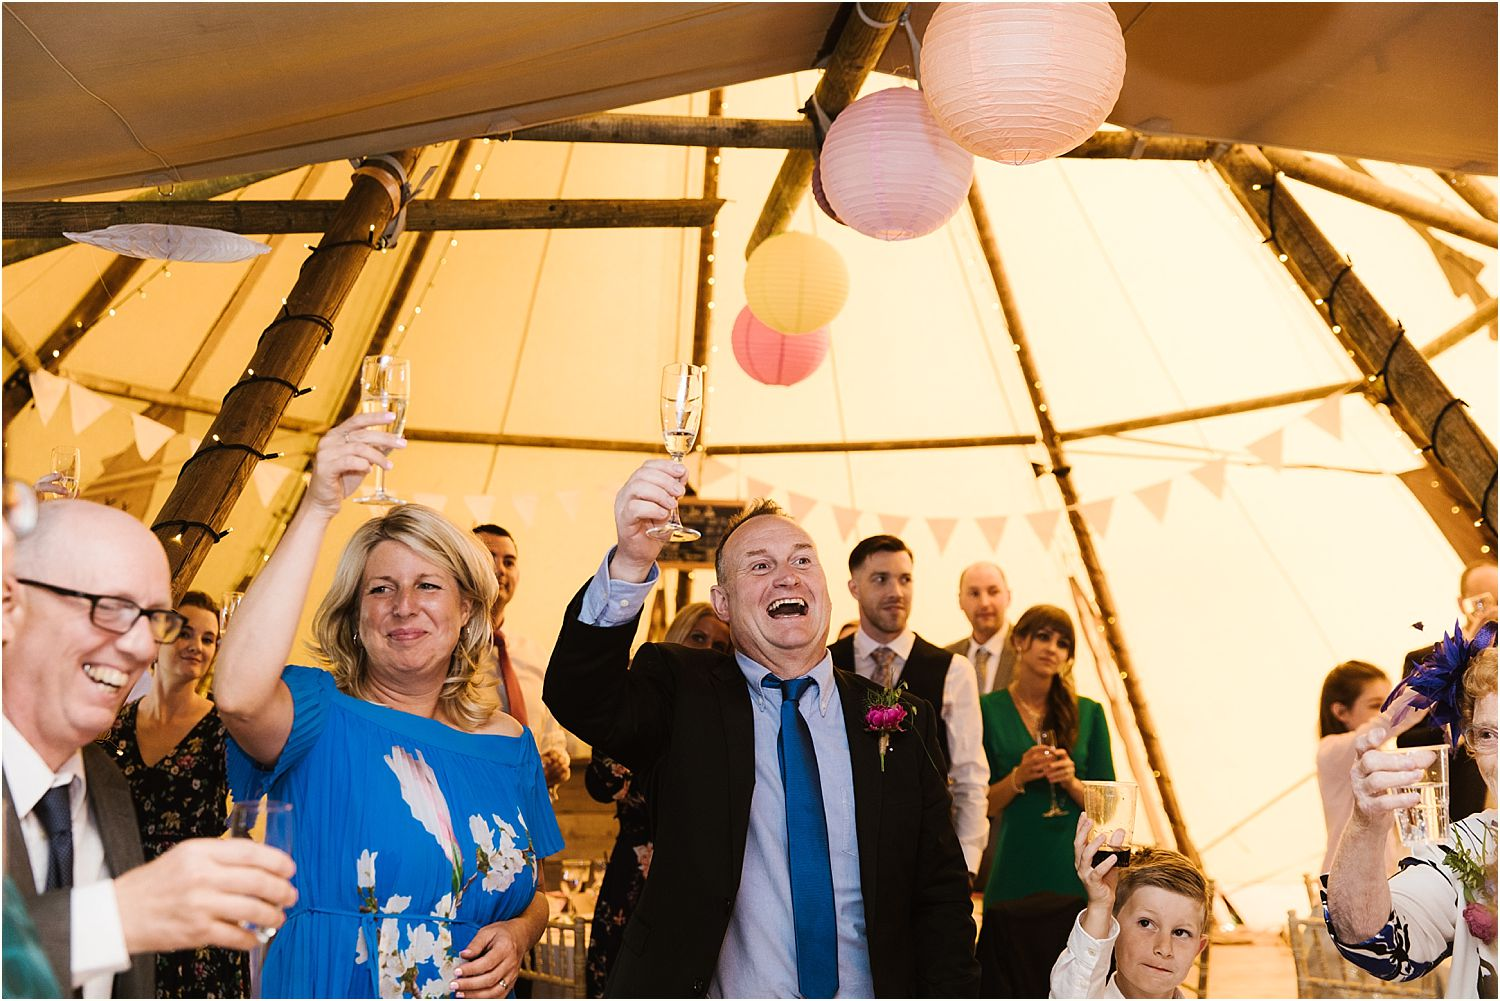 Guests raise a glass to toast the bride and groom at Lancashire tipi wedding